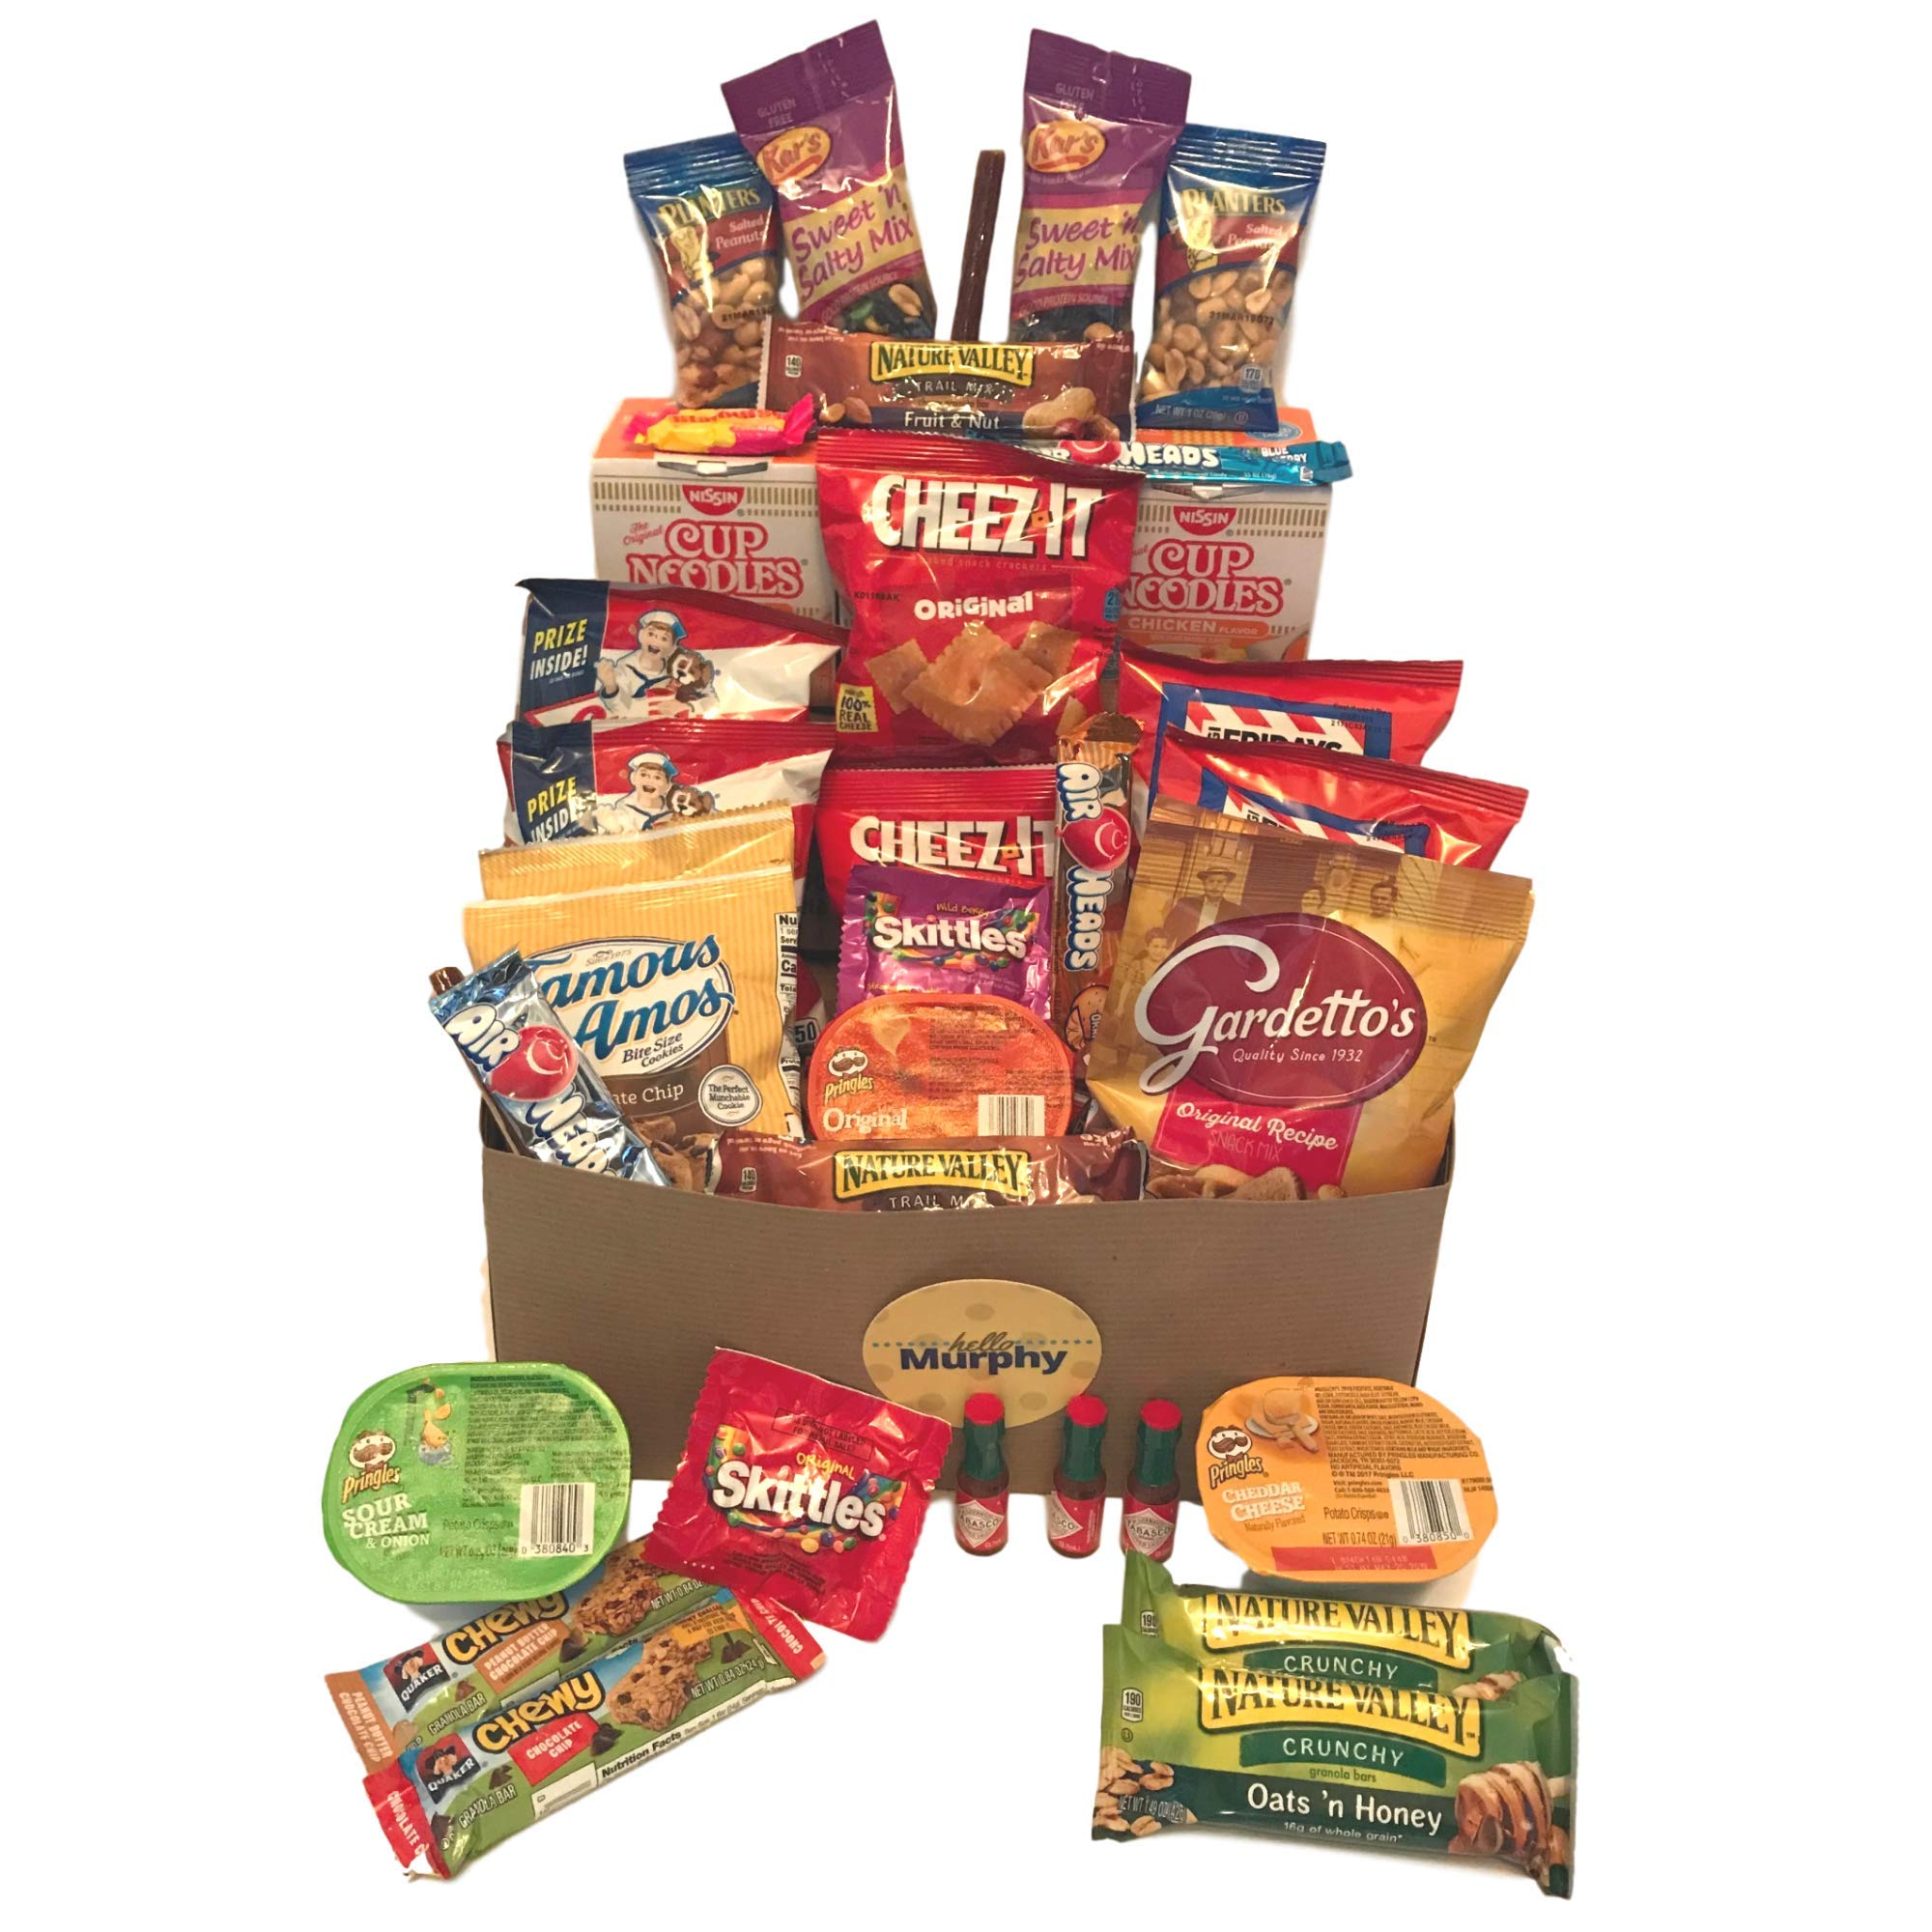 Care Package Variety Snack and Gift Box | 35 Assorted Snacks, Chips, Cookies, and Candy by Murphy Snack Packs